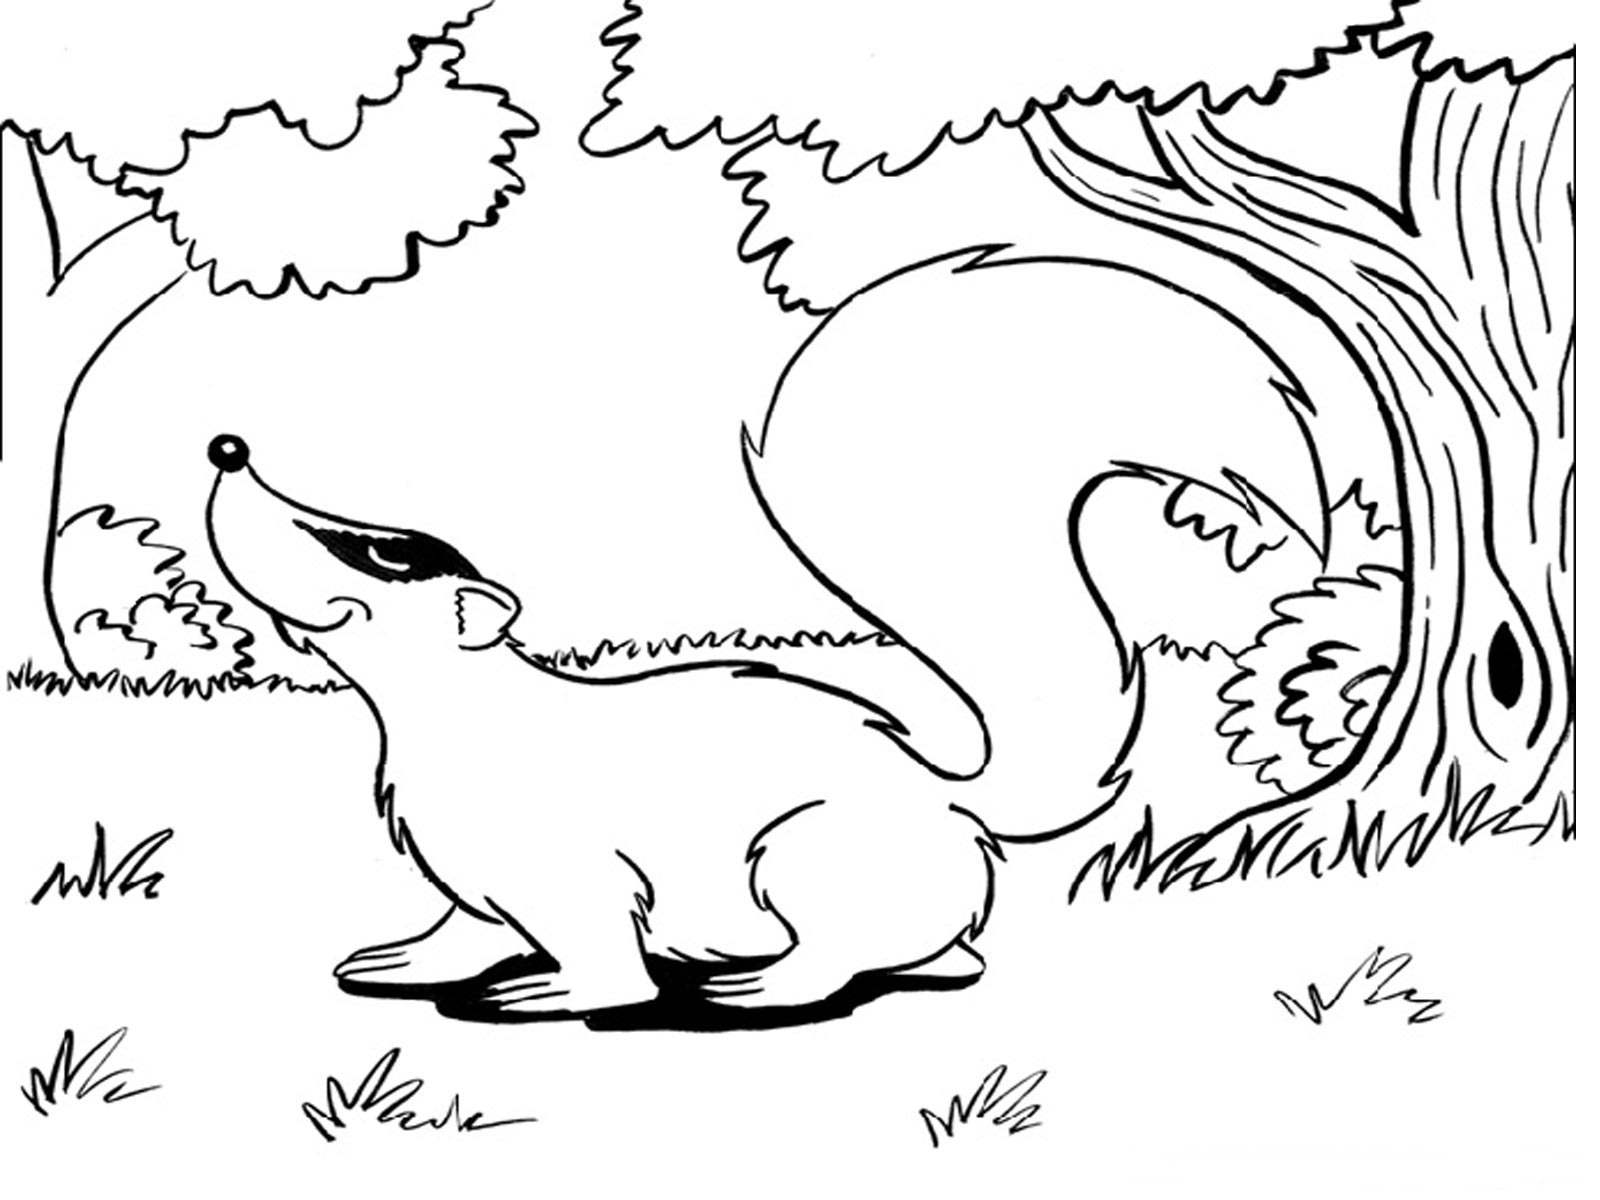 Children's coloring pages animals - Free Printable Squirrel Coloring Pages For Kids